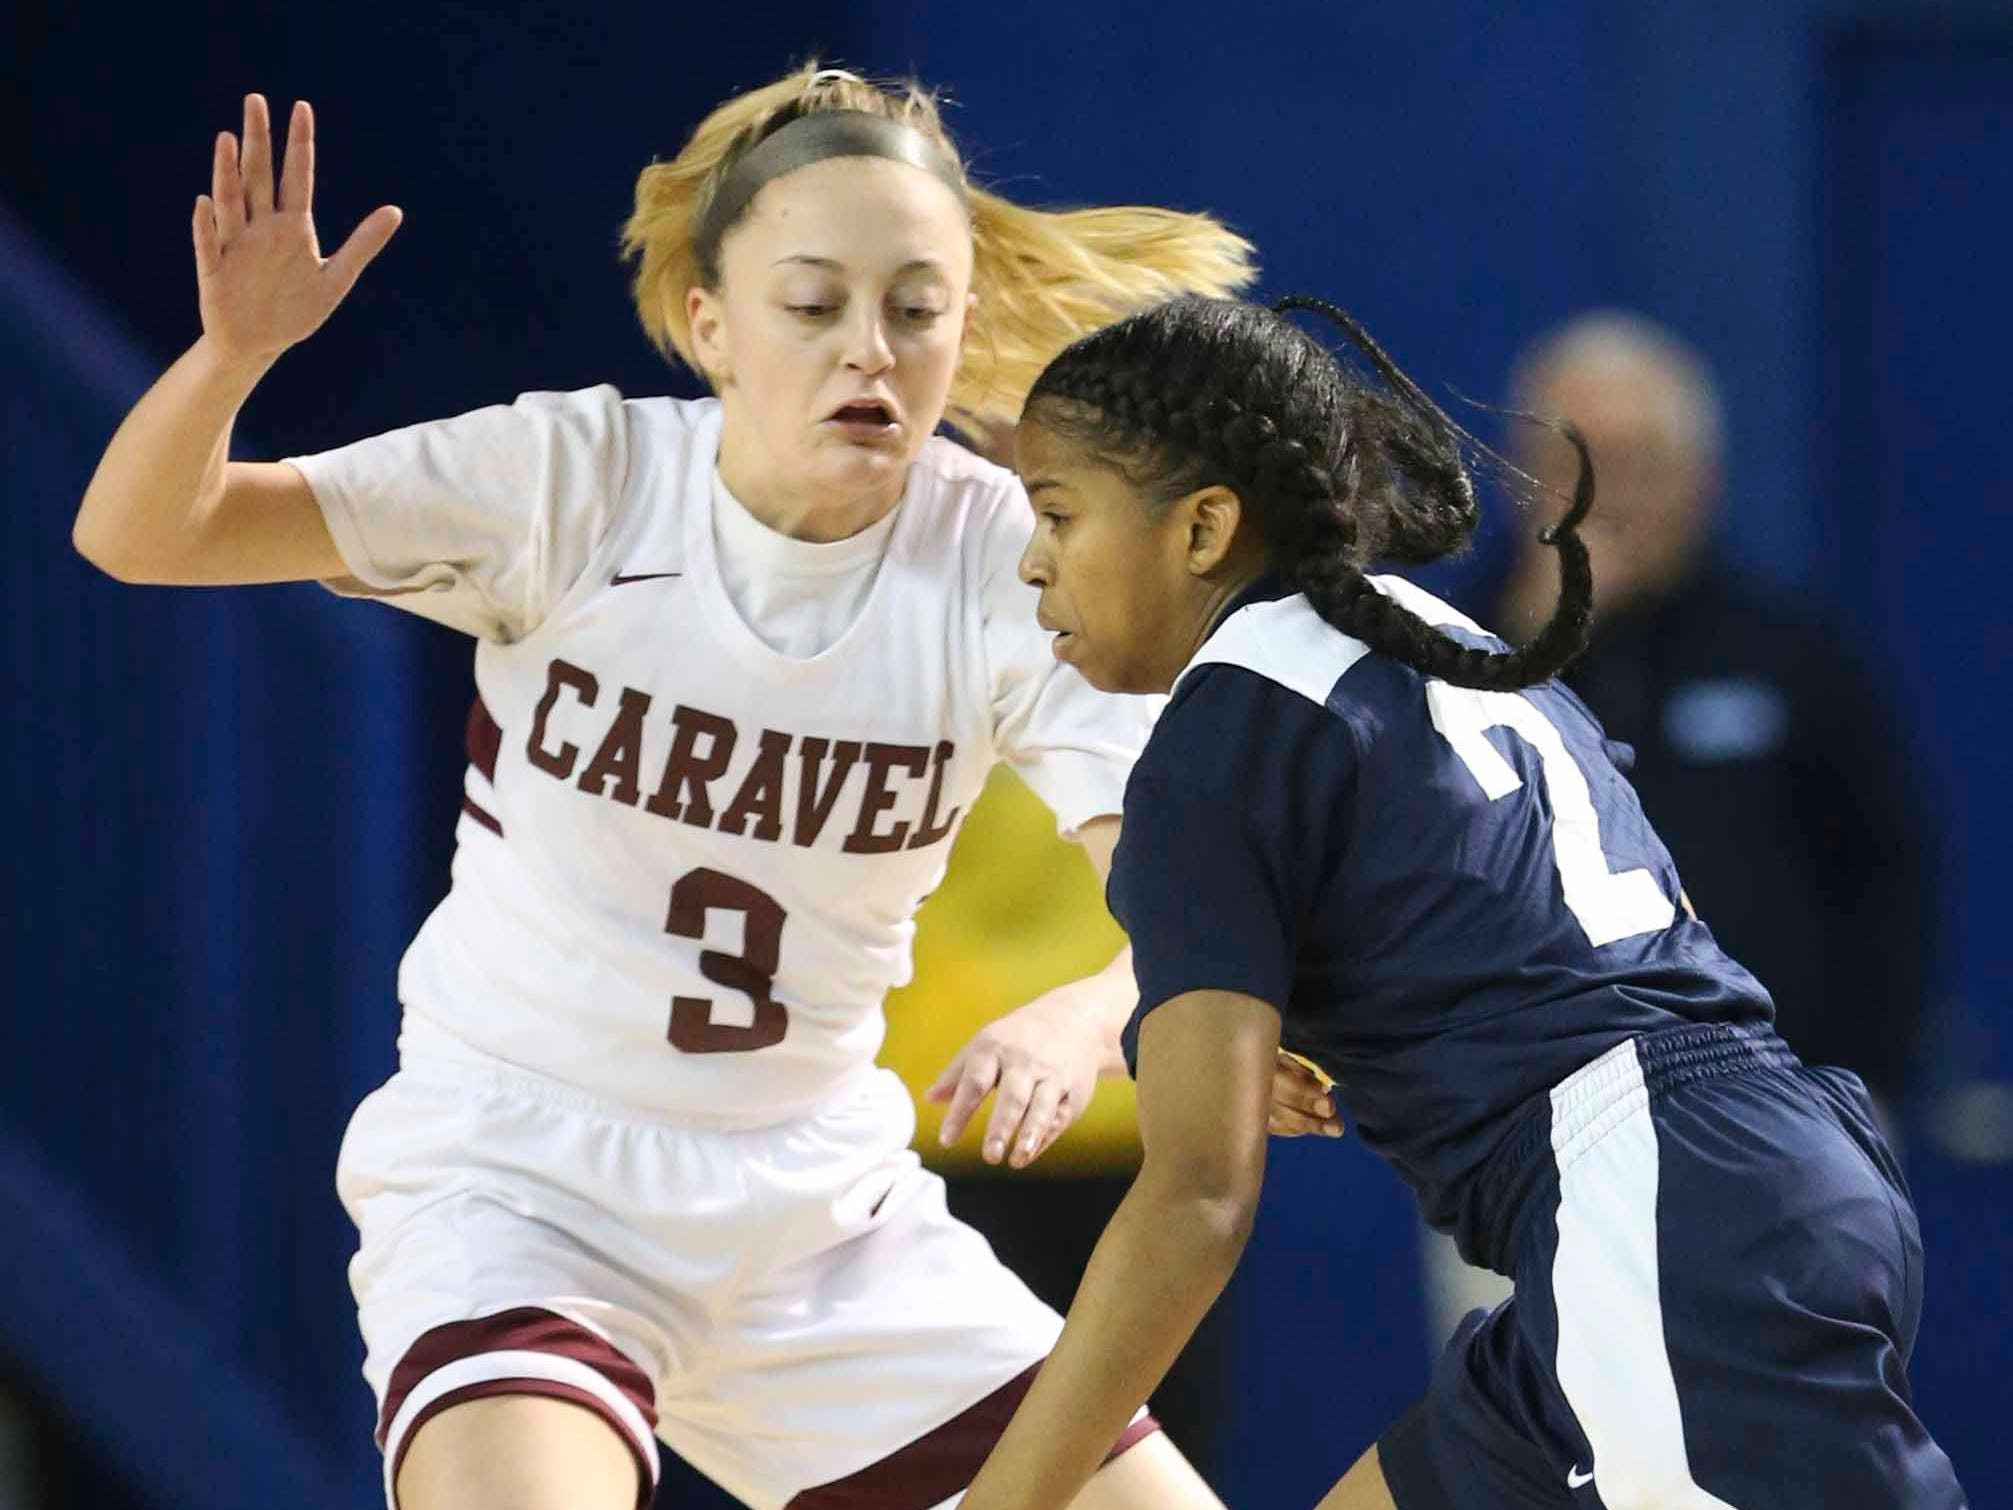 Caravel's Karli Cauley defends against Sanford's Lauren Park in the first half of the DIAA state tournament championship game at the Bob Carpenter Center Friday.